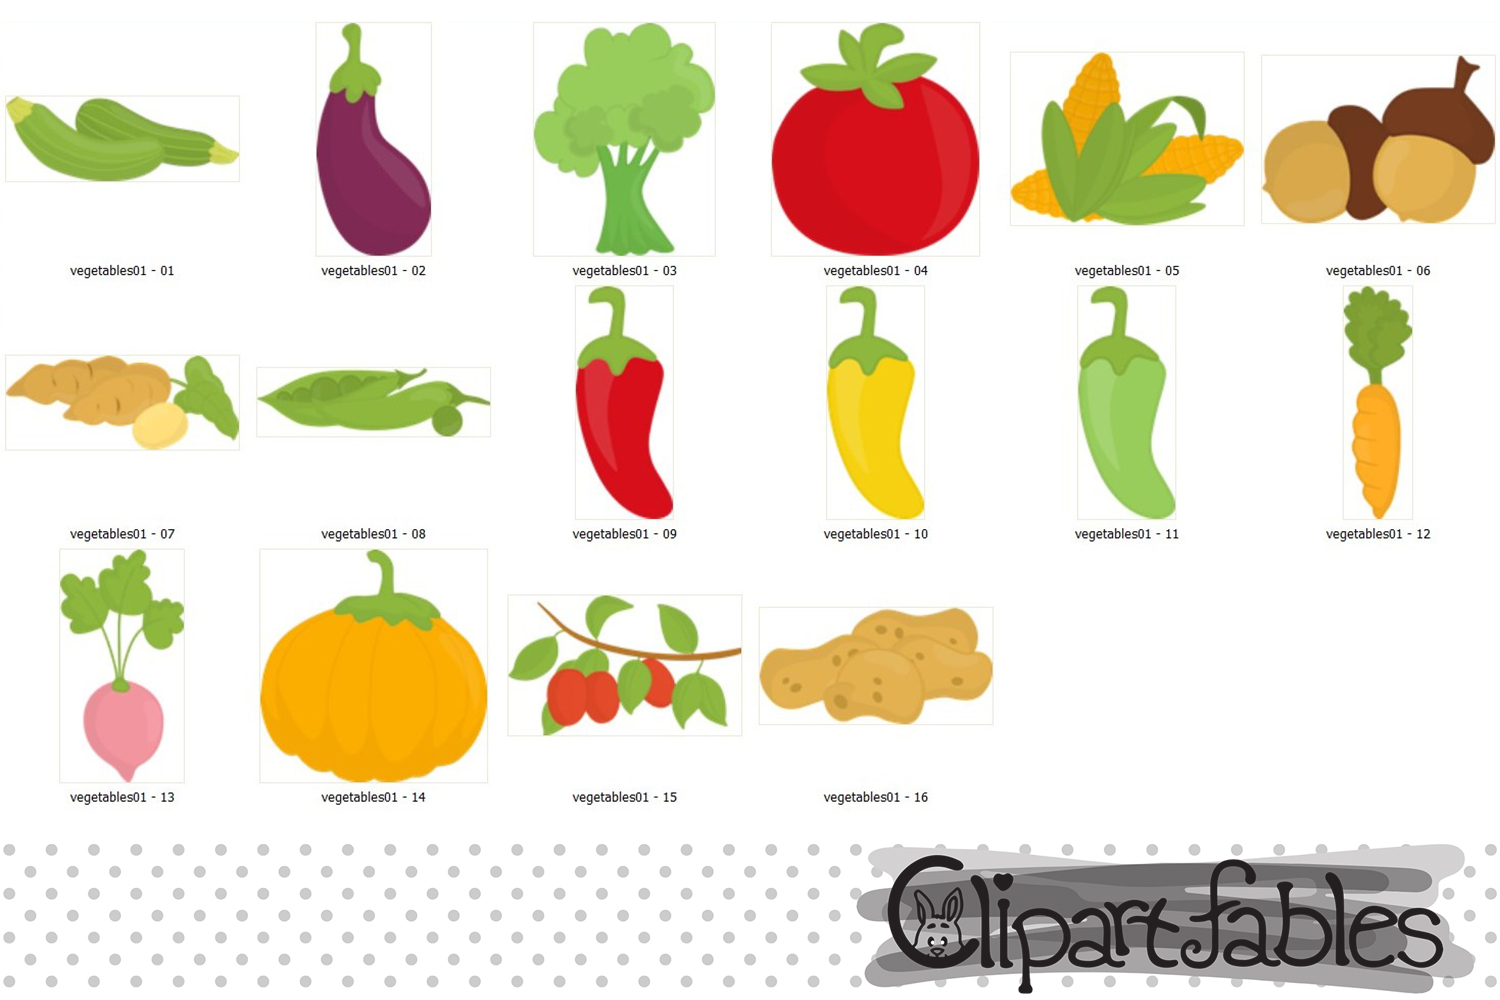 Cute vegetables clipart clipart library library Cute Vegetables clipart - instant download, digital clipart clipart library library